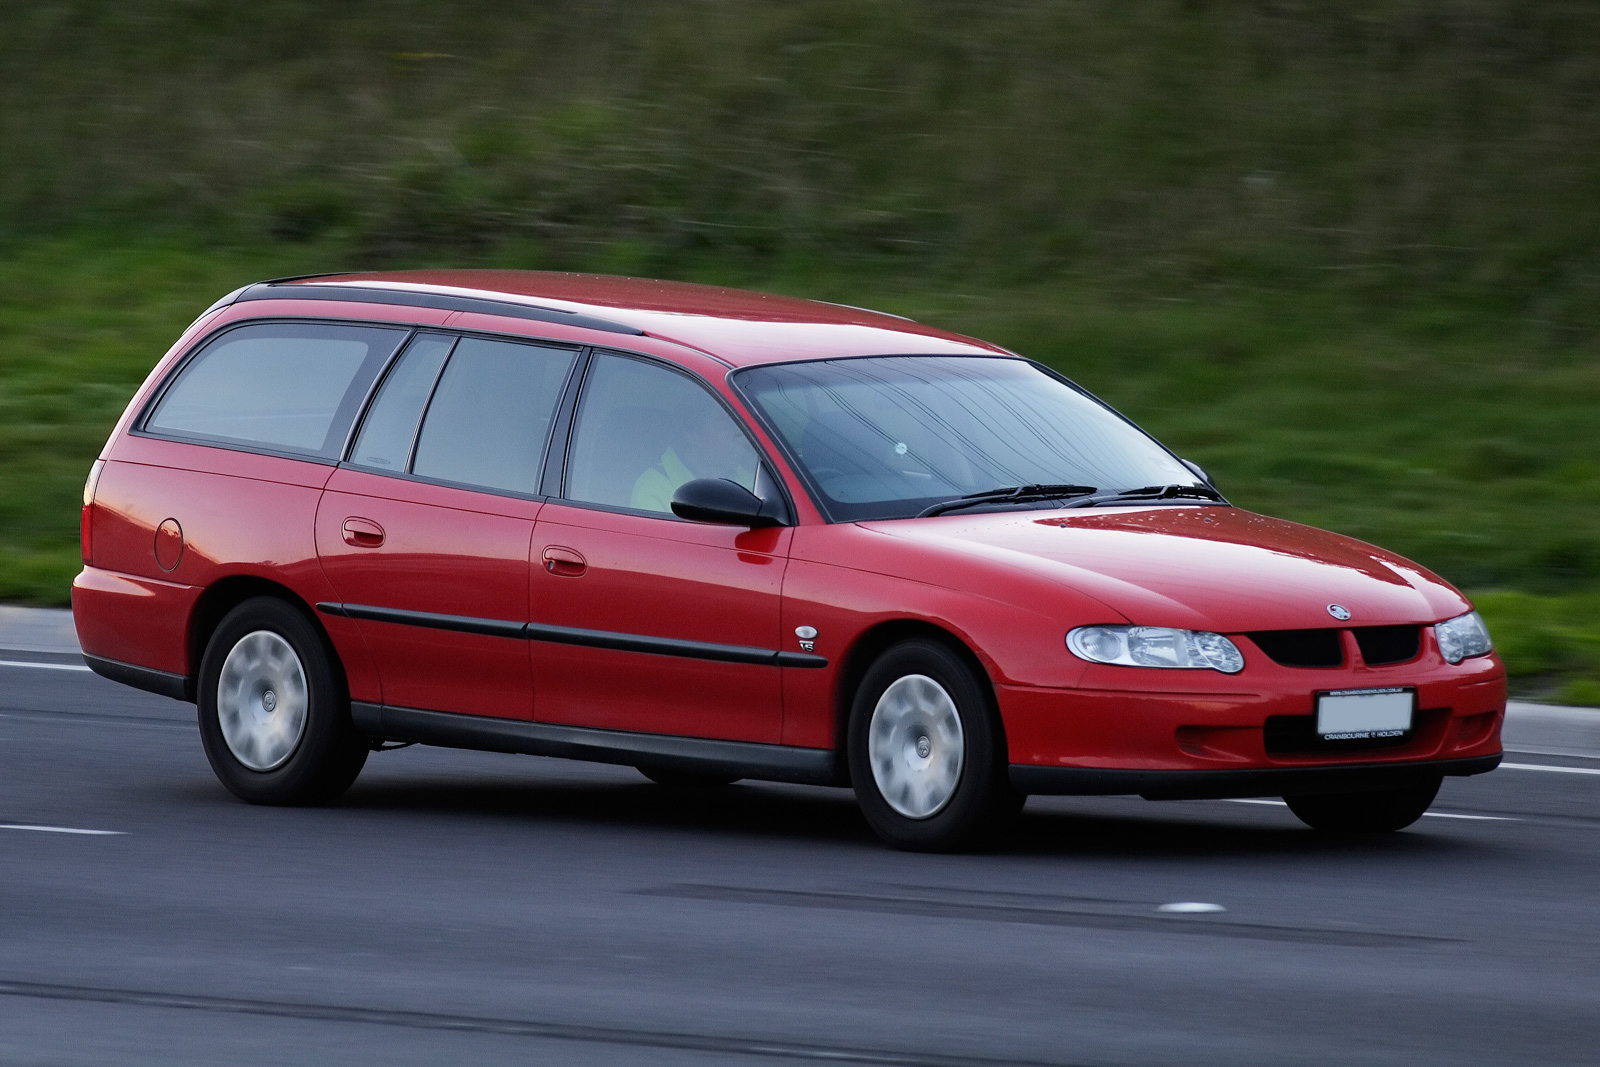 Very File:2000–2001 Holden VX Commodore Executive station wagon.jpg  ZL63